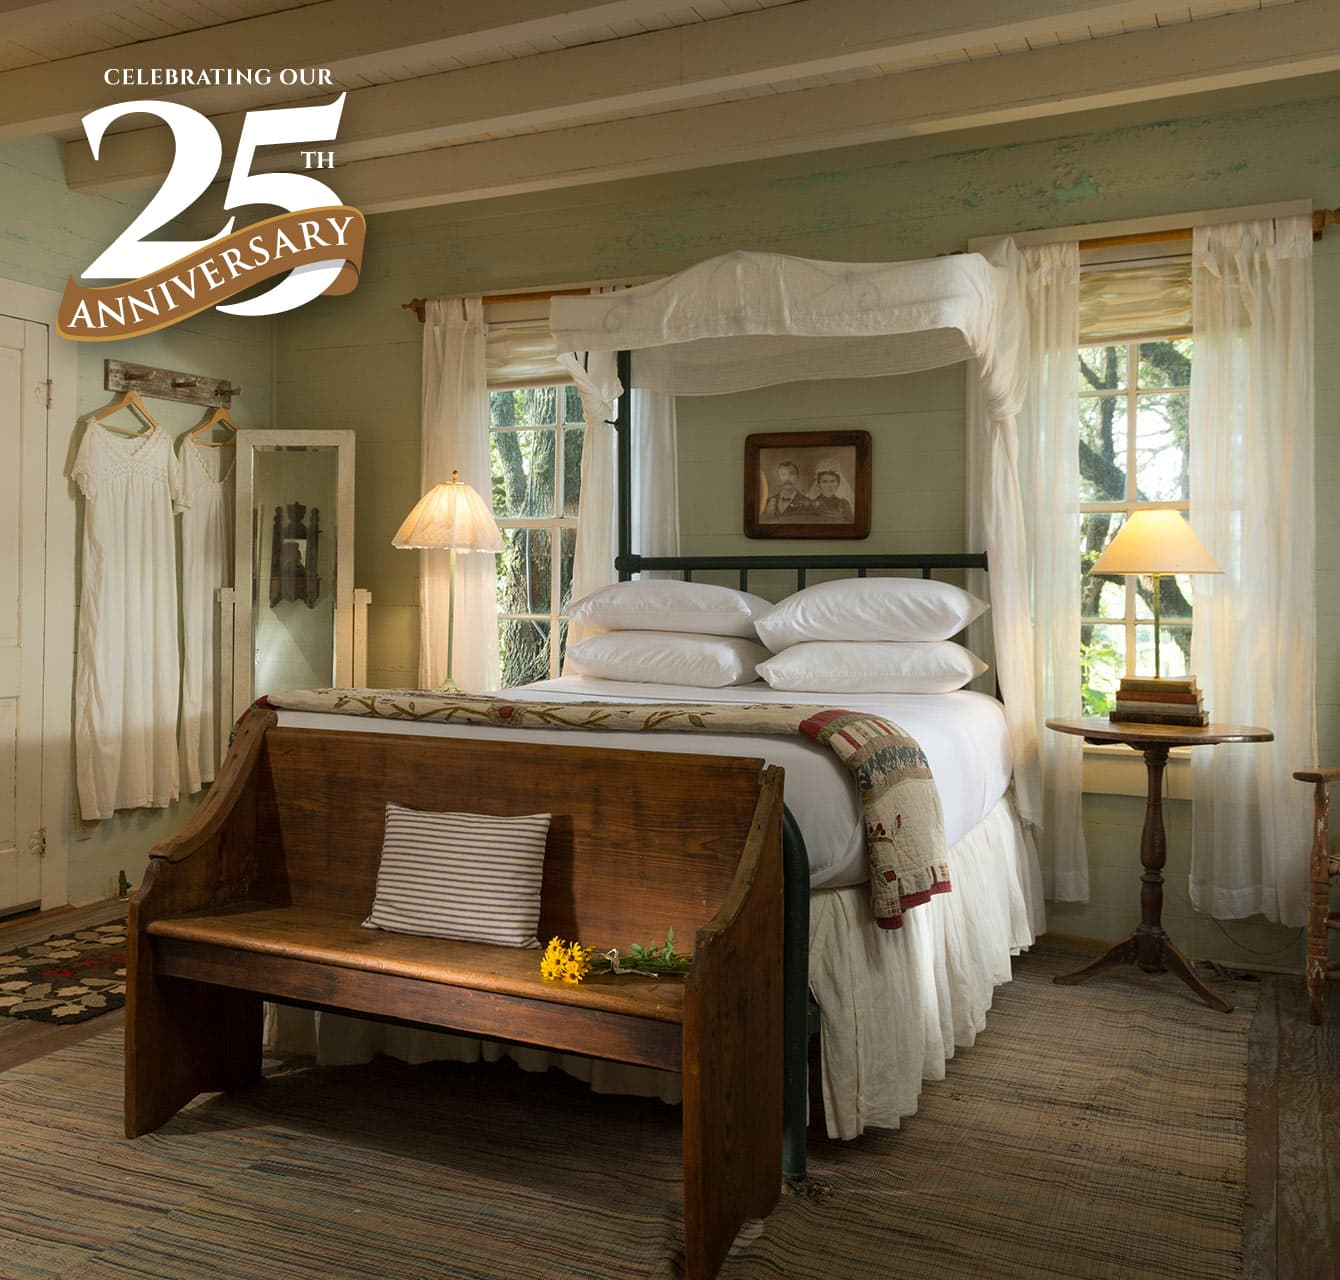 BlissWood bedroom celebrating 25th anniversary